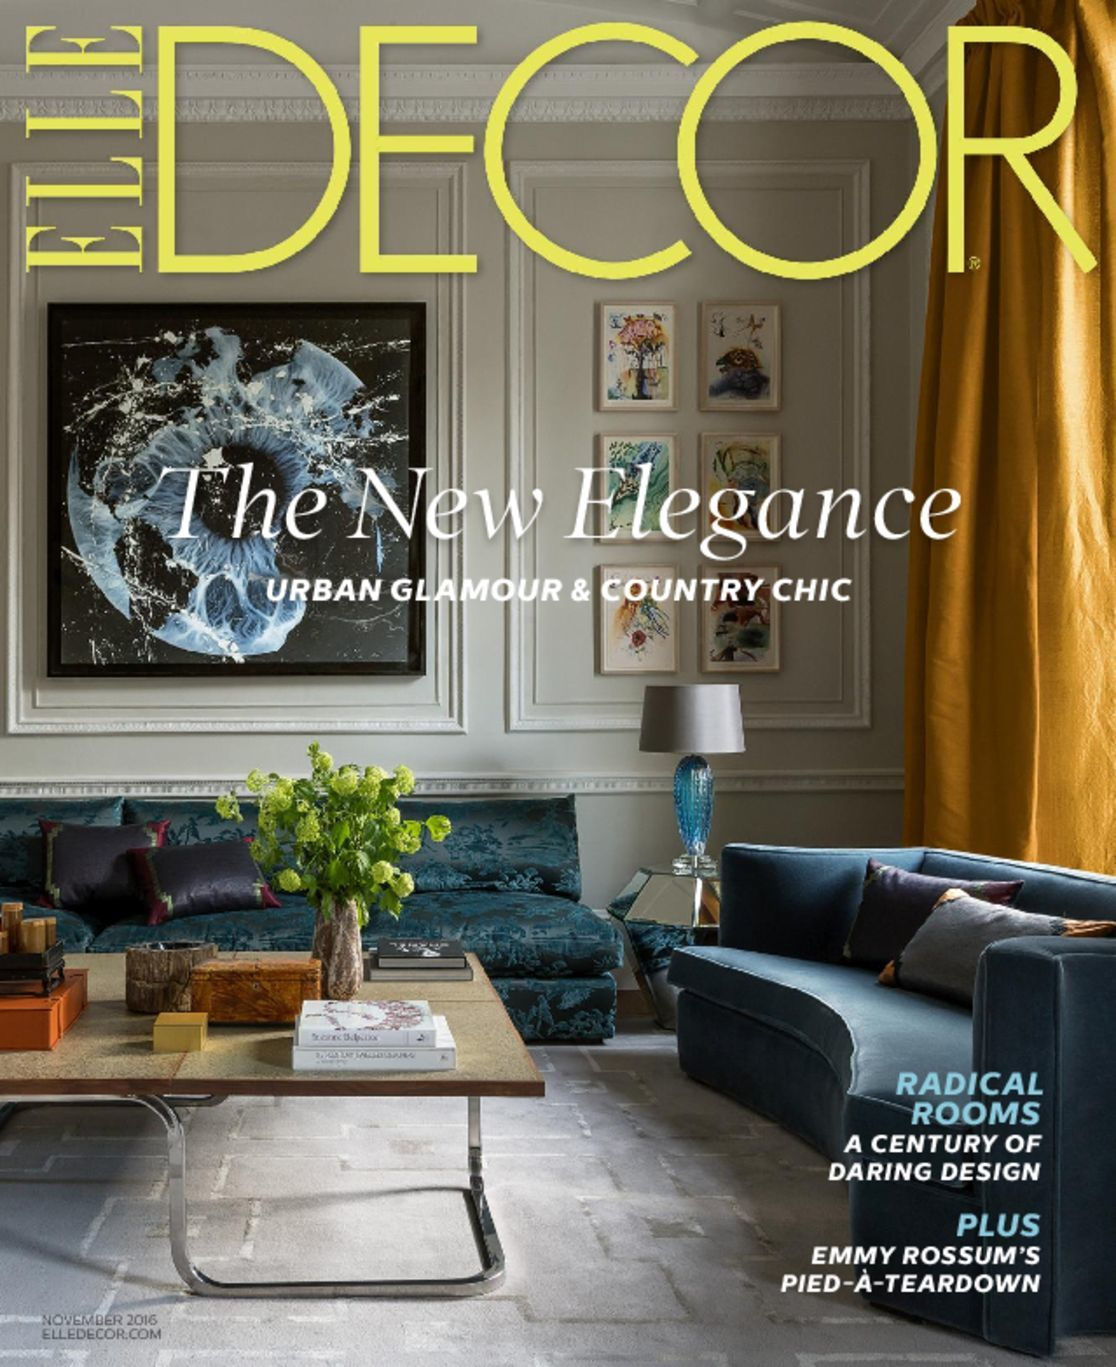 Grant K Gibson 5667 Elle Decor Cover 2016 November 1 Issue Grant